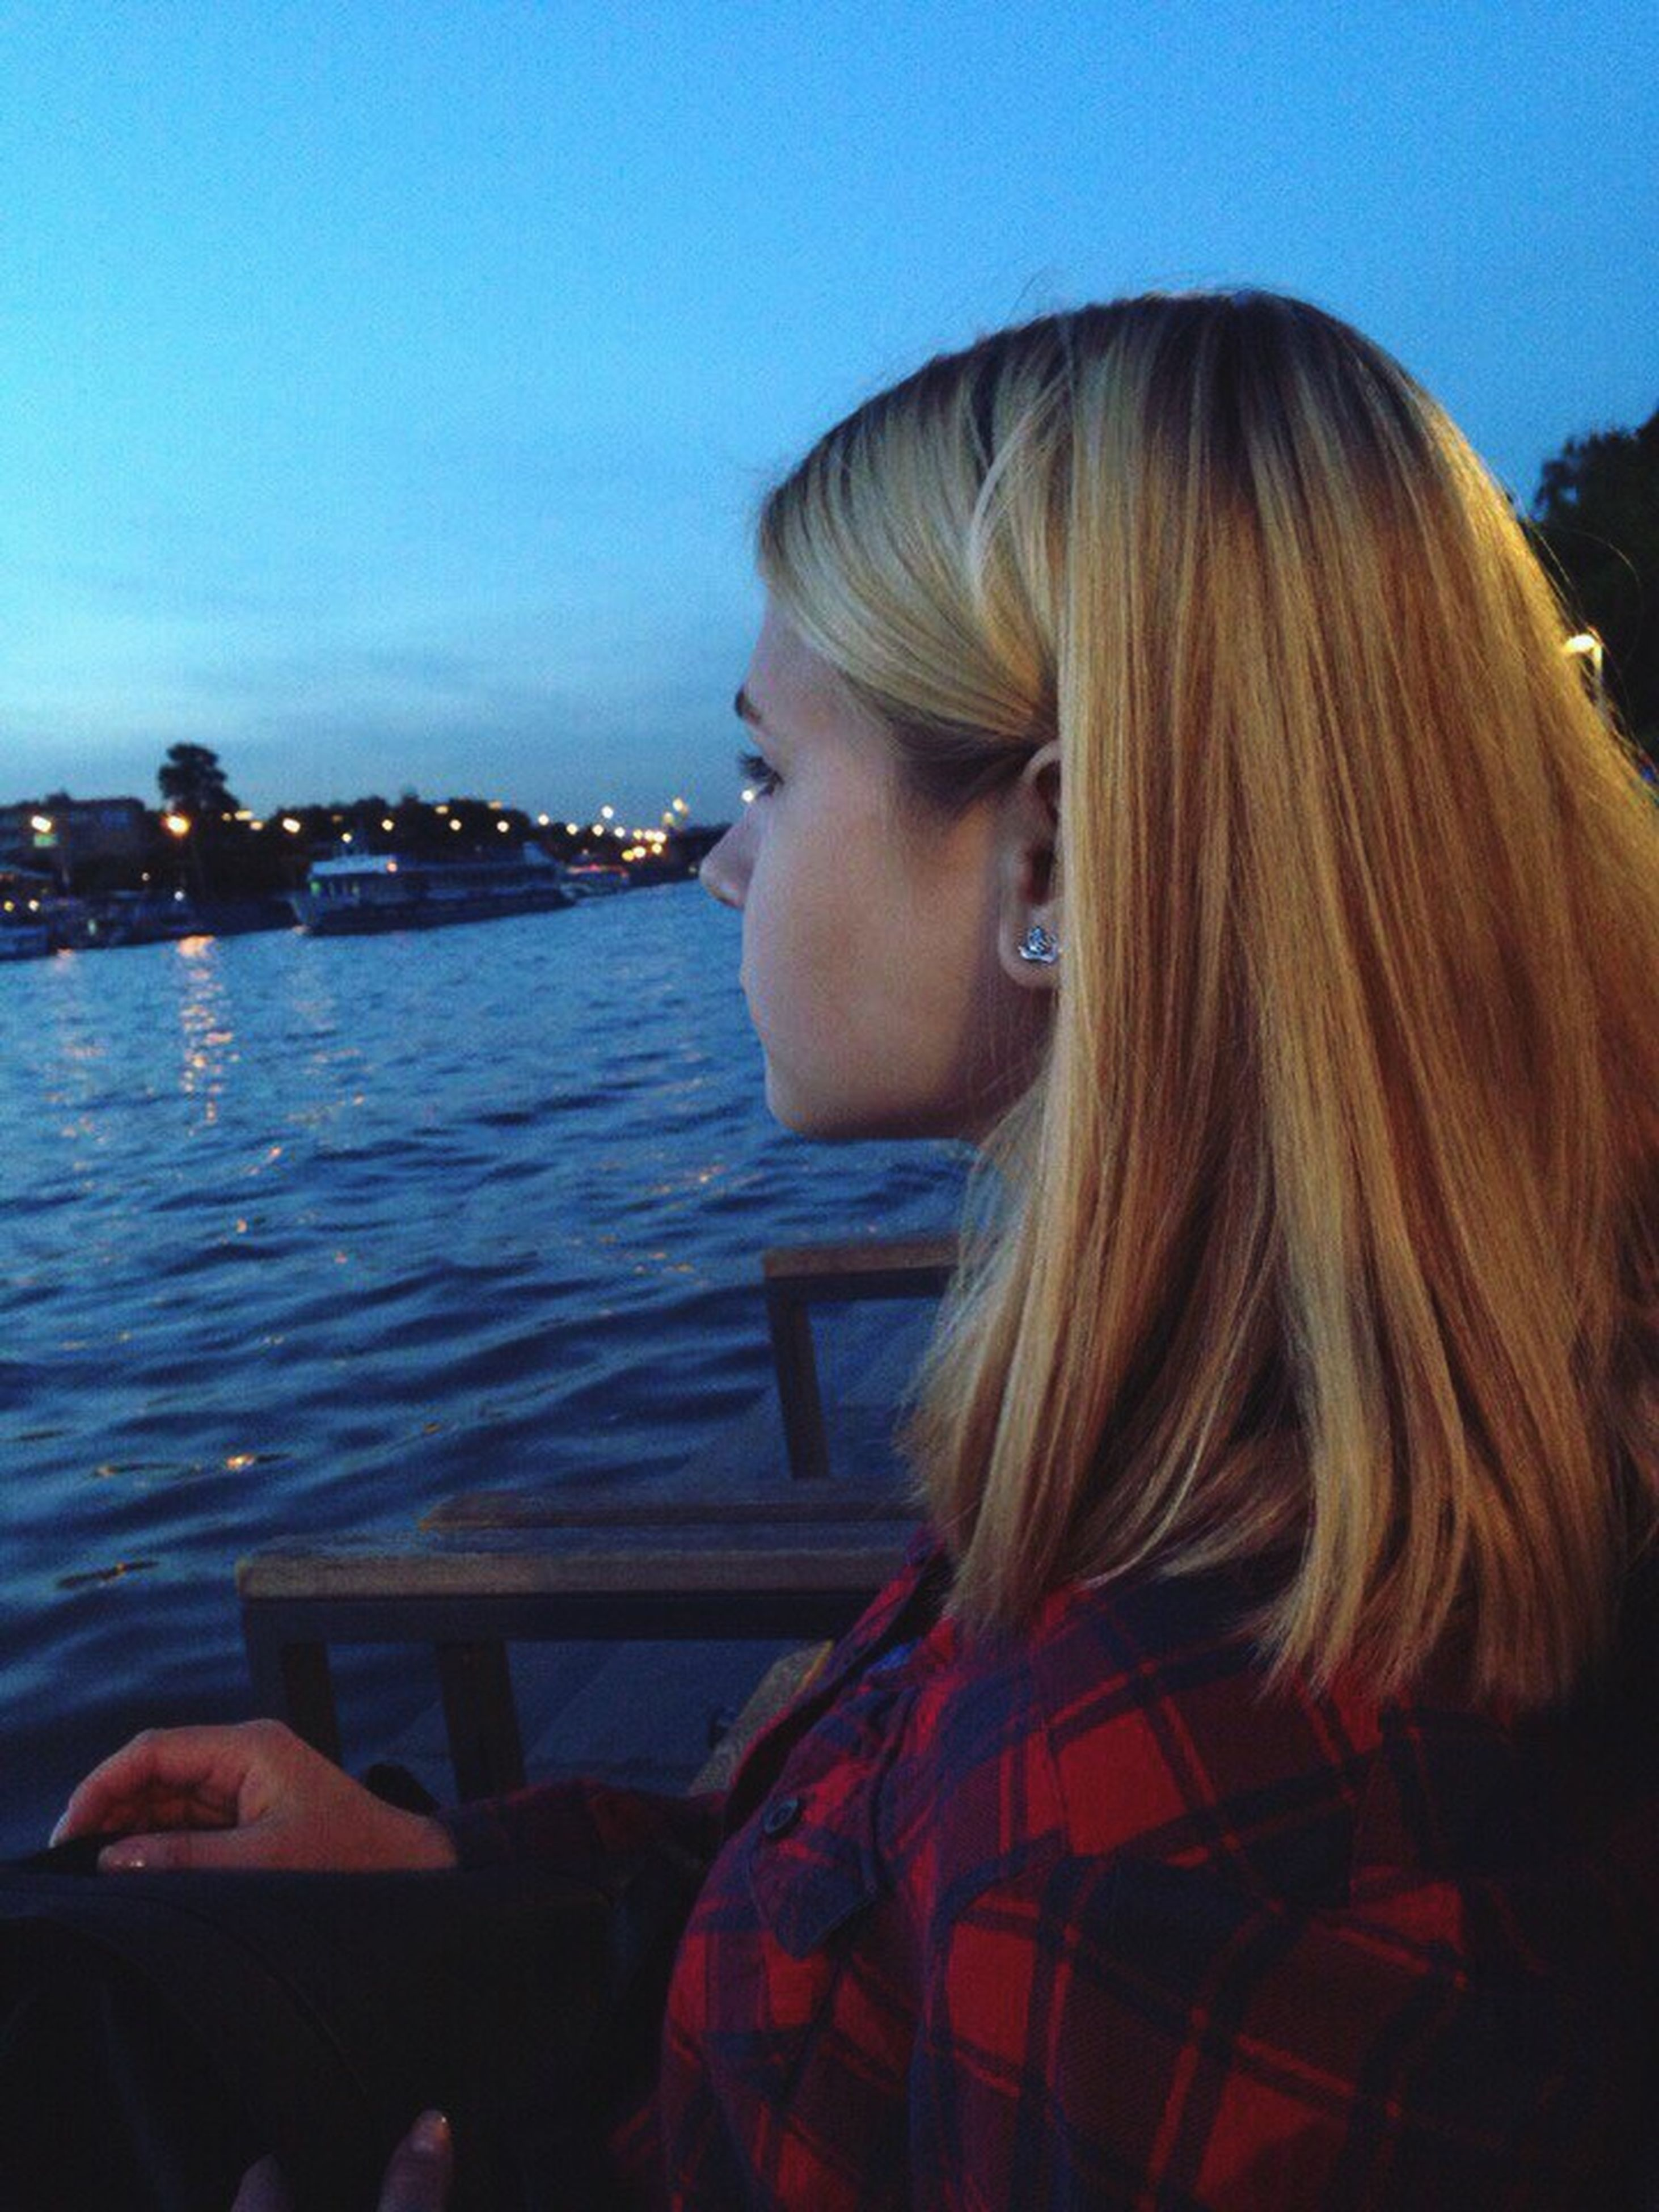 water, young adult, lifestyles, person, long hair, young women, clear sky, leisure activity, sea, headshot, casual clothing, copy space, contemplation, waist up, blond hair, lake, sky